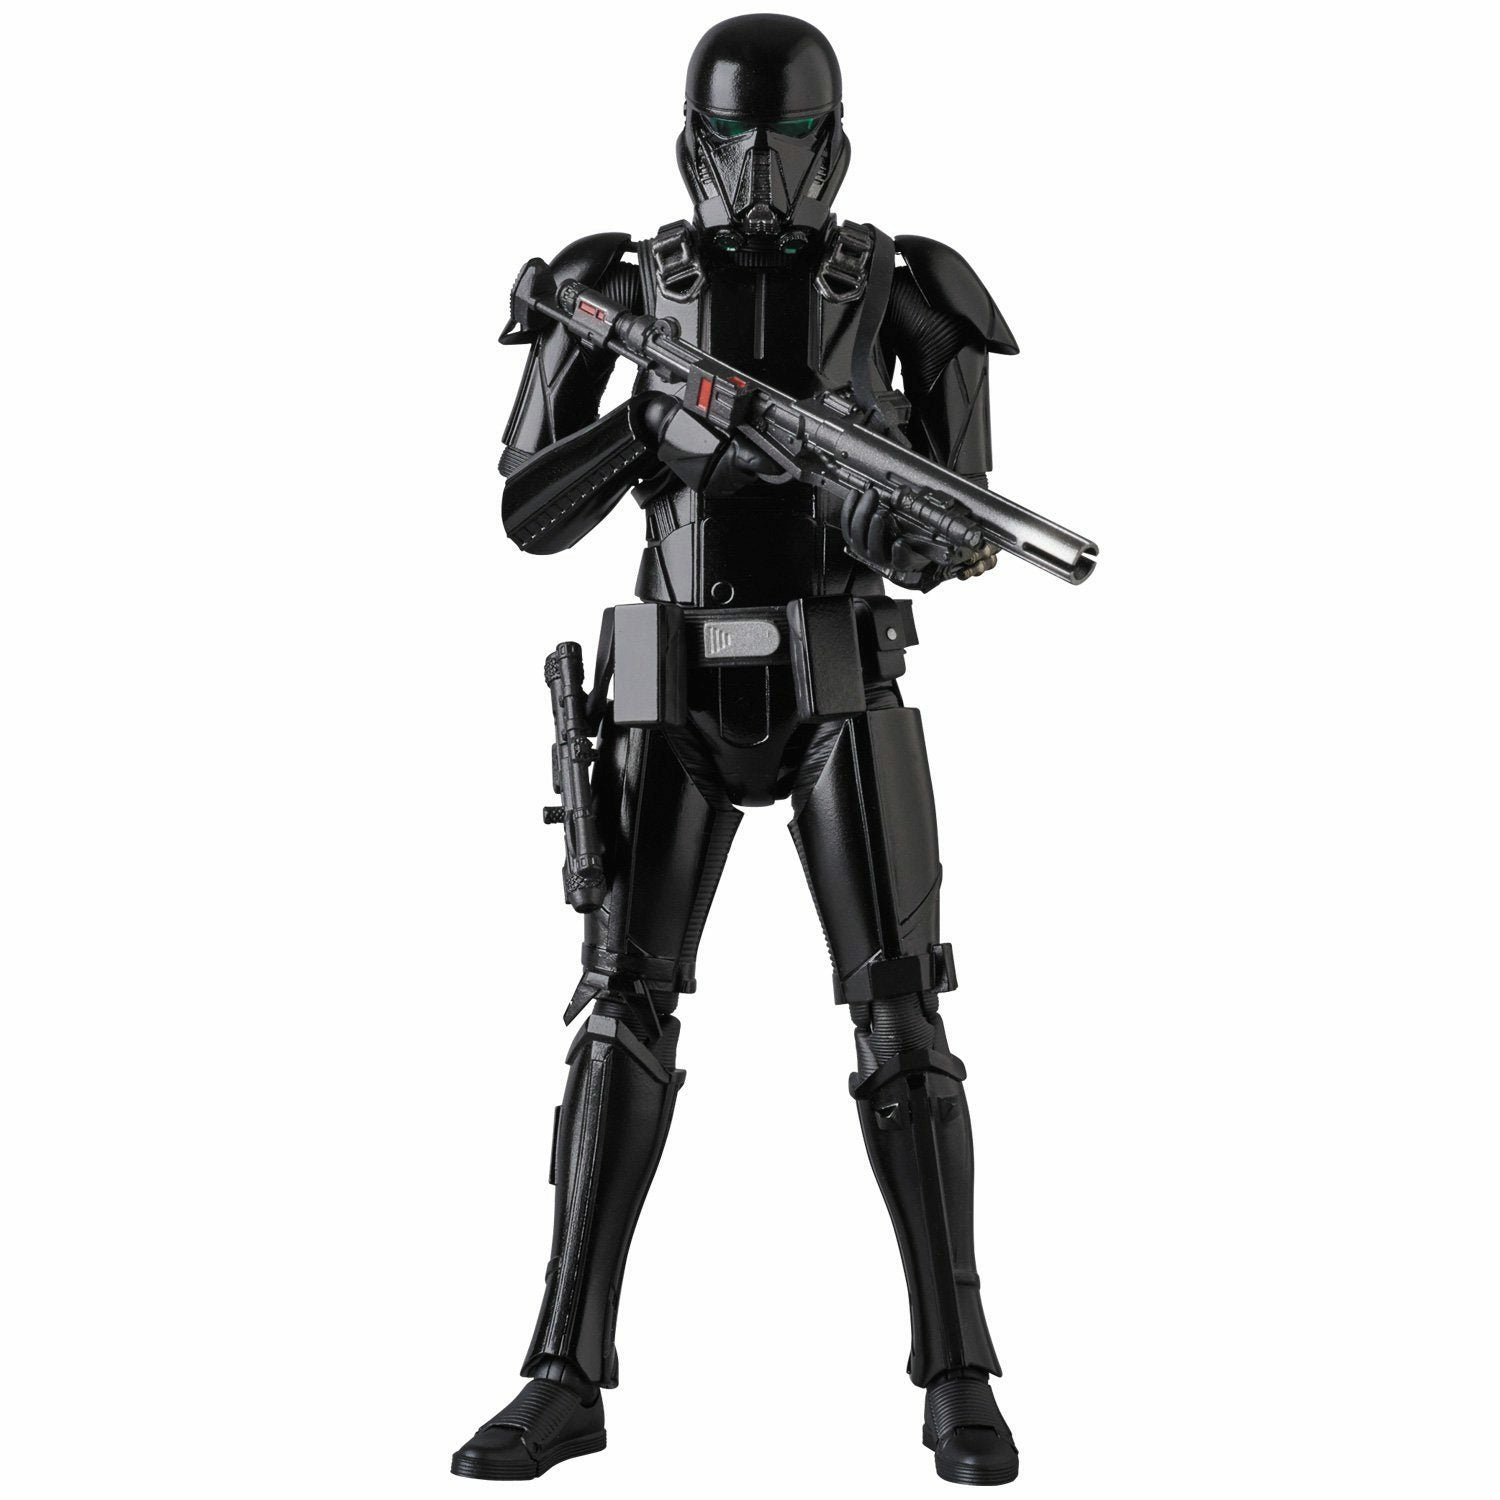 Star Wars Rogue One Death Trooper MAFEX PVC Action Figure